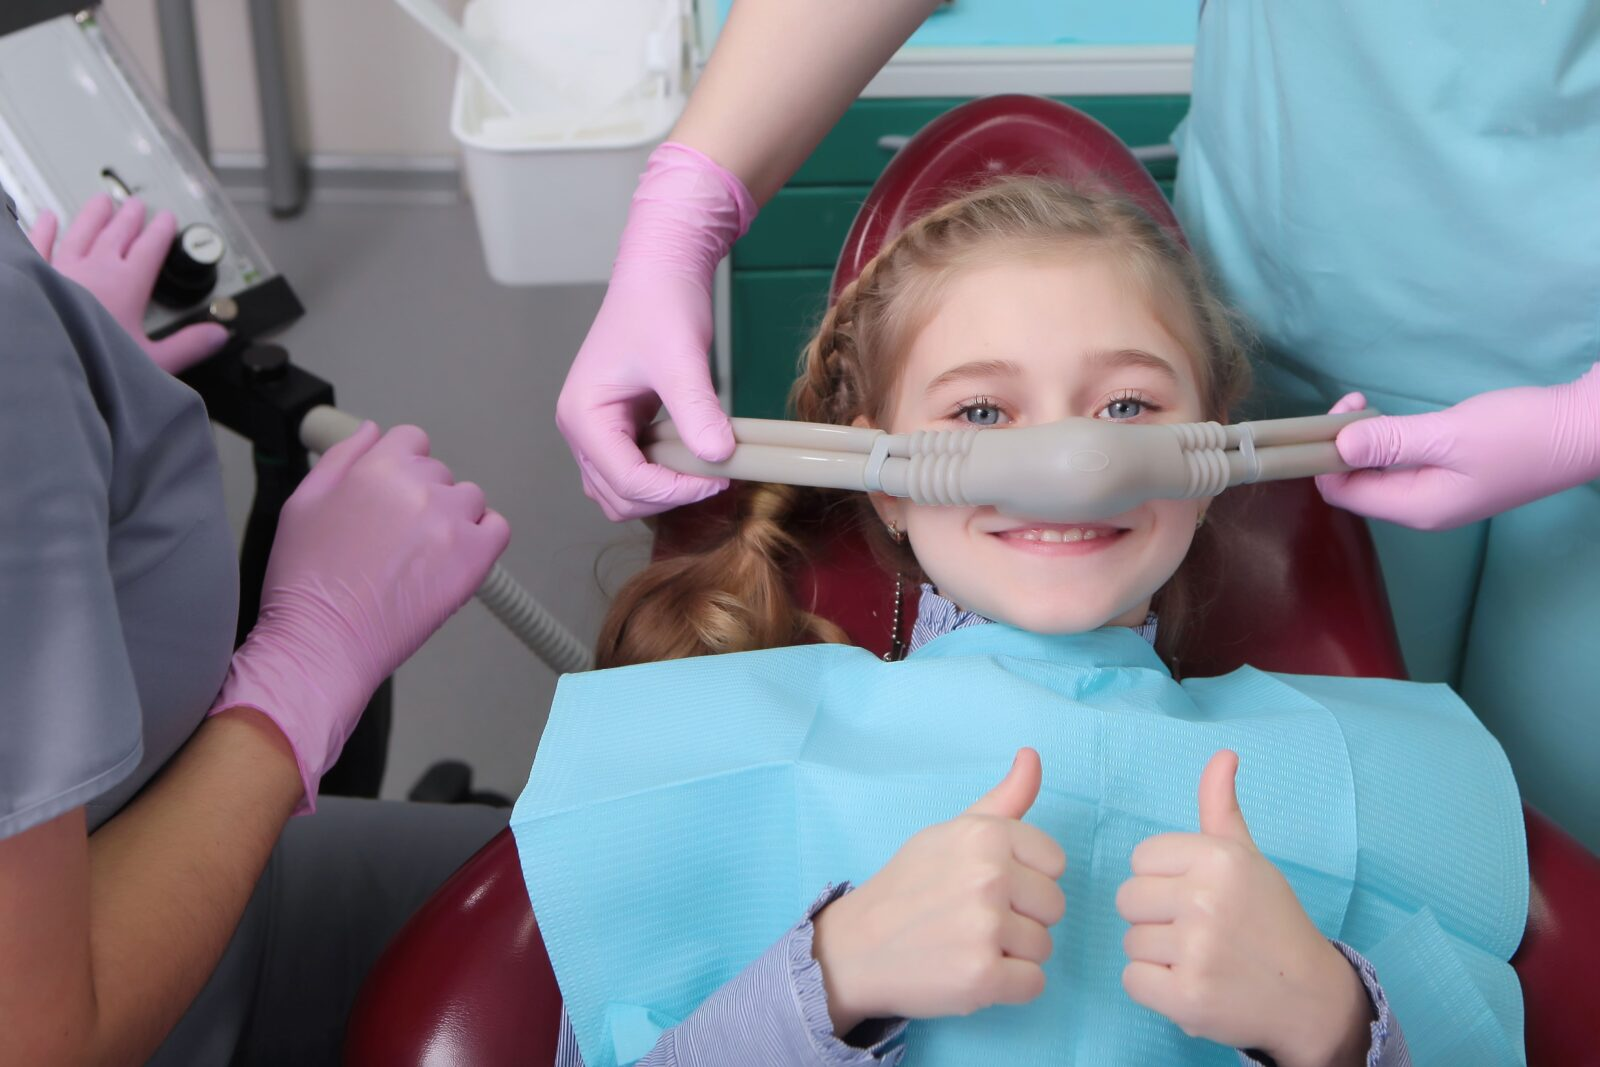 young girl with a nitrous oxide face mask giving a thumbs up